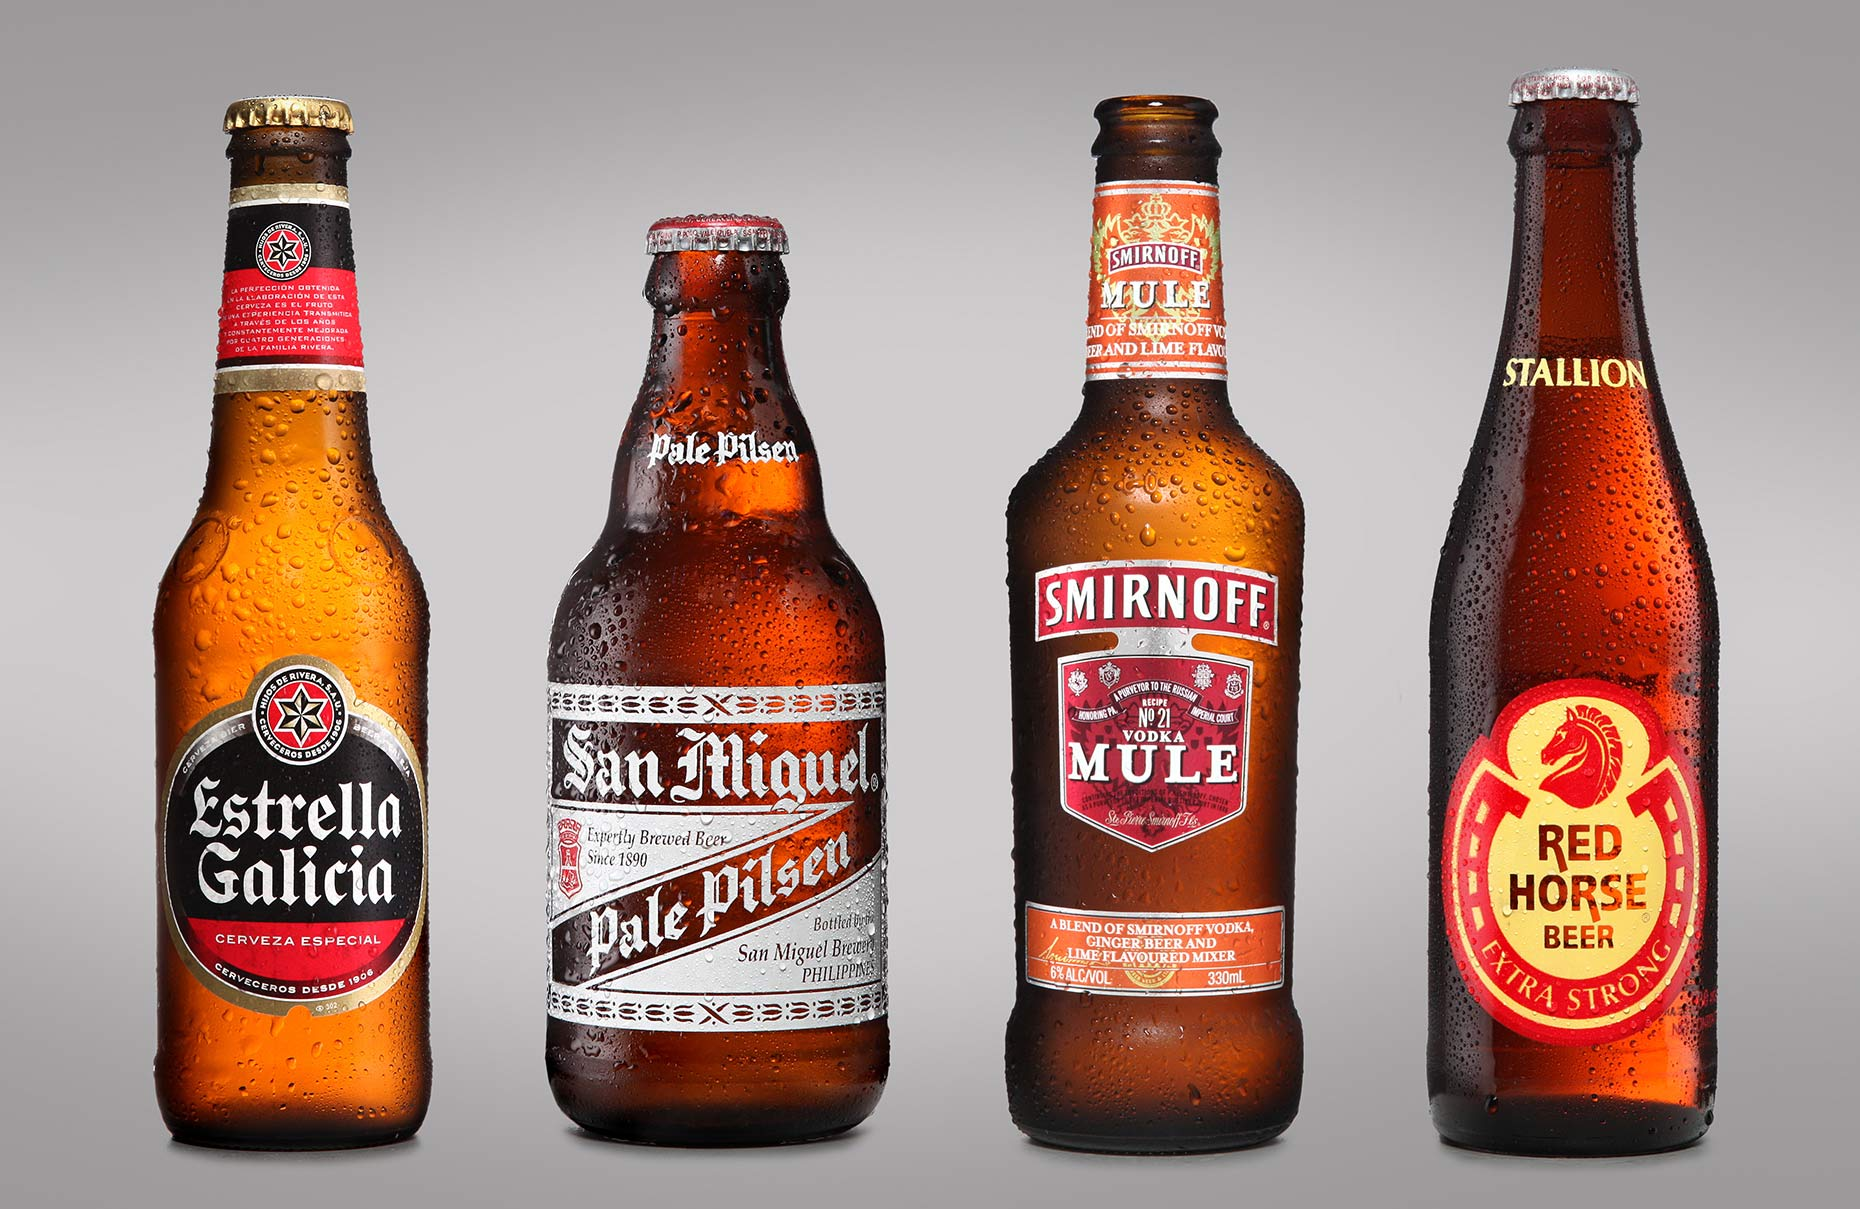 product photography of beer bottles